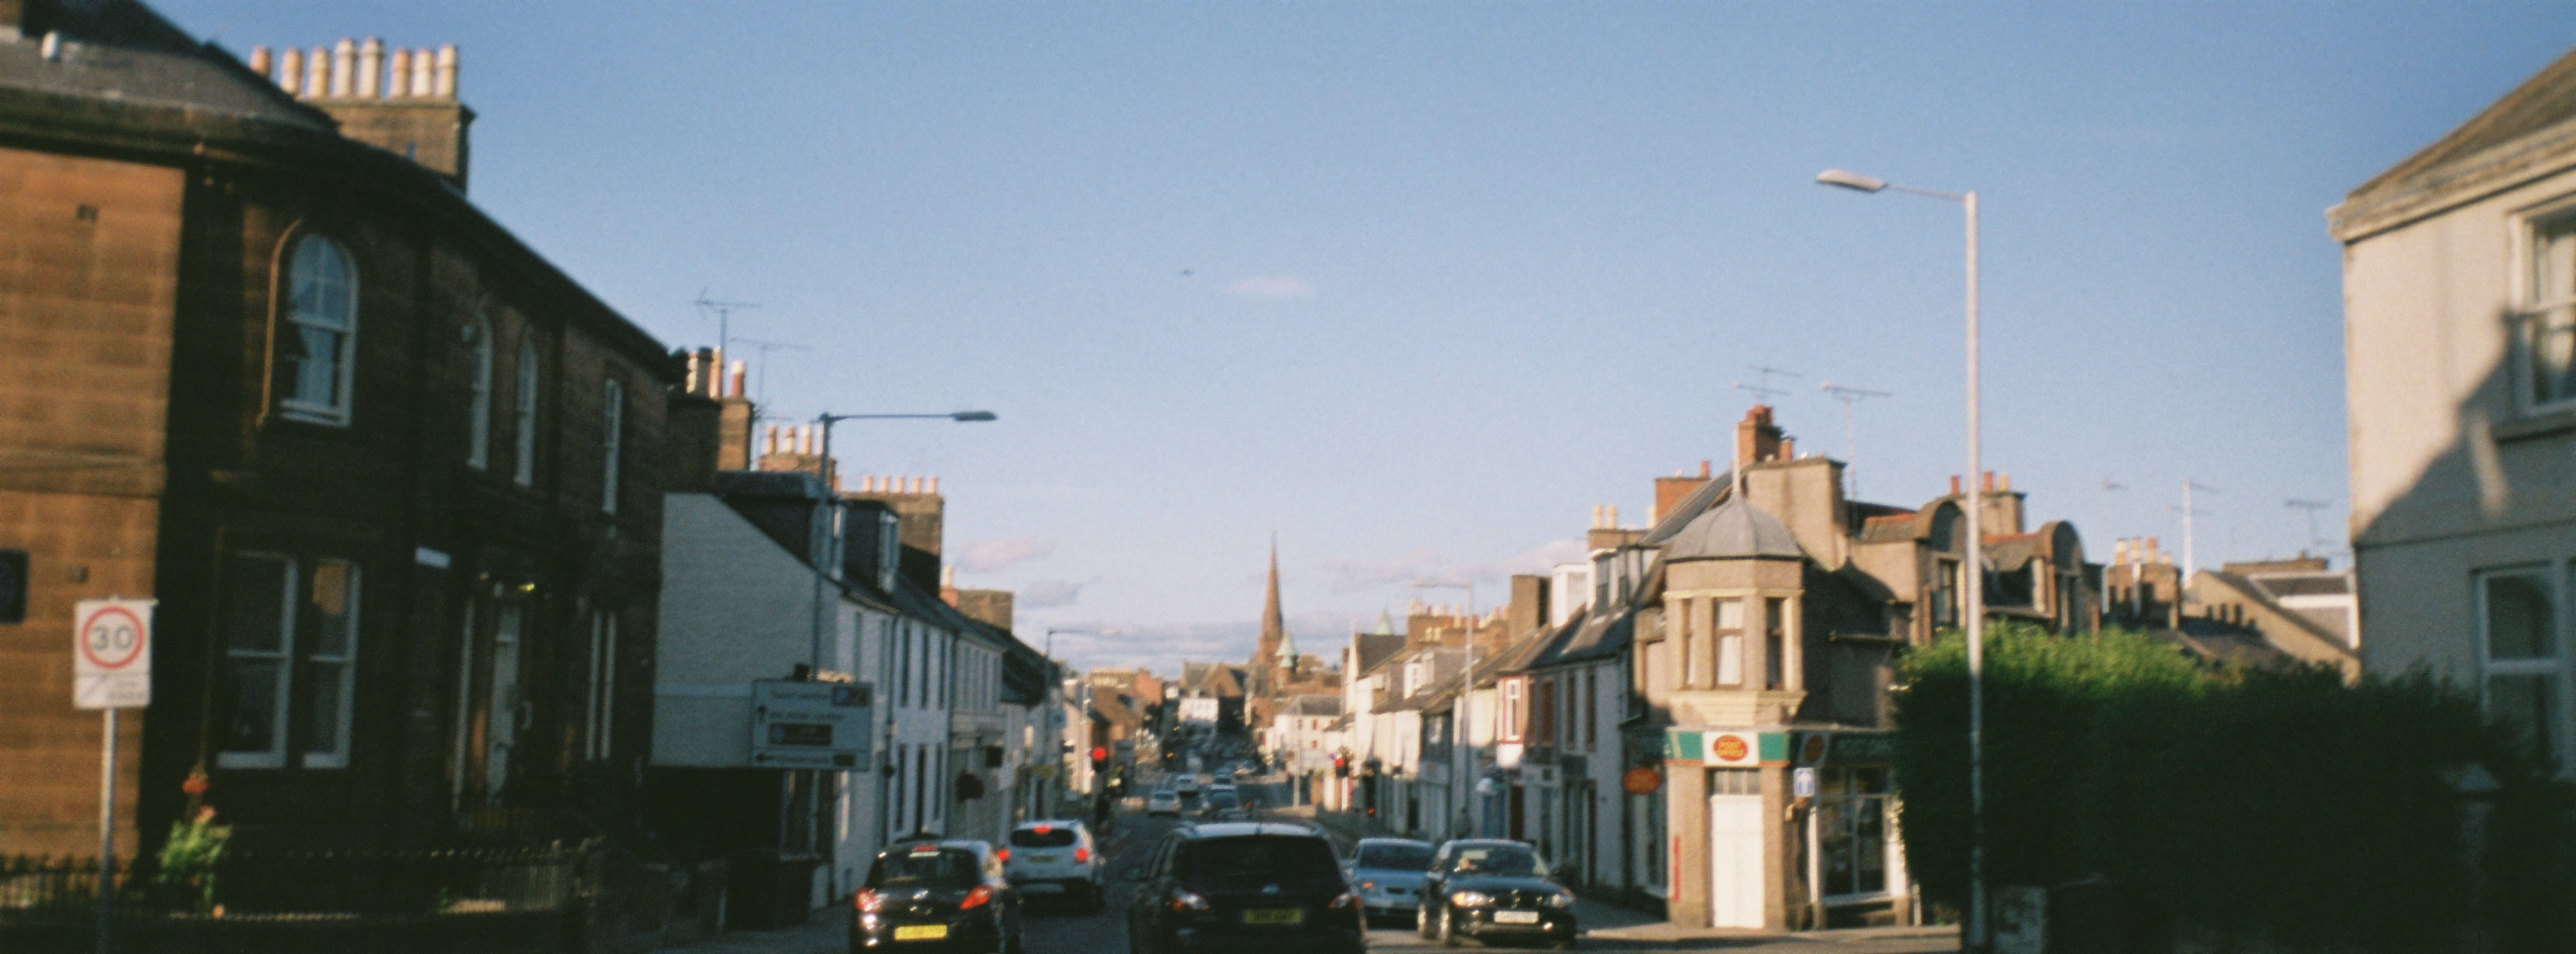 Dumfries 2015. Panorama Wide Pic Camera with Agfaphoto Vista Plus 200